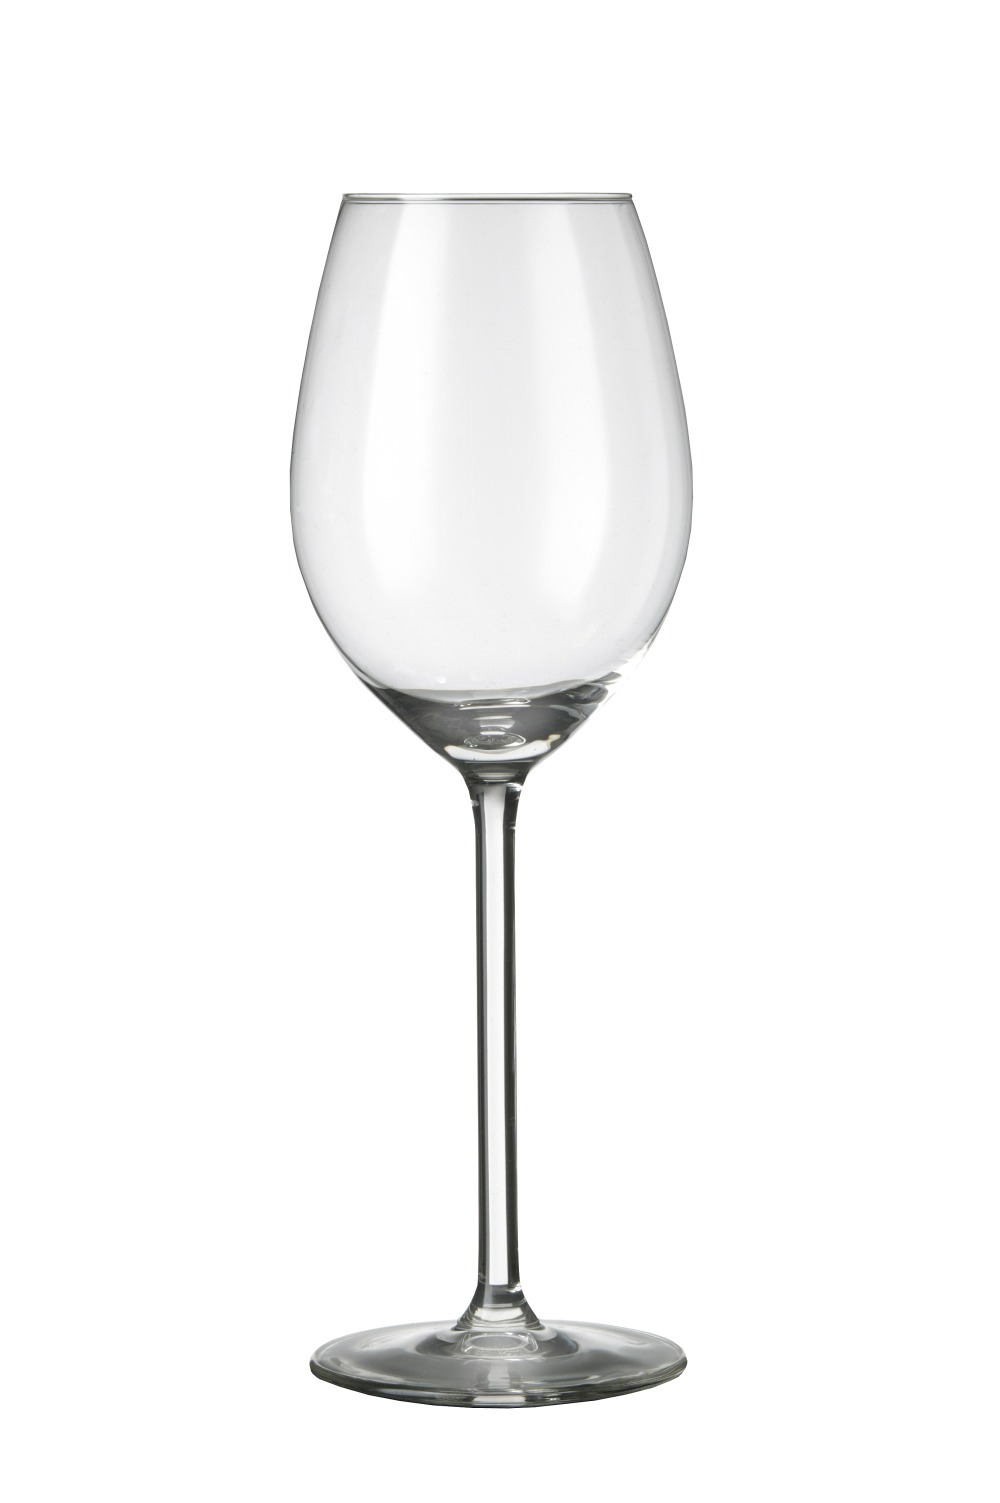 royal_leerdam_wijnglas_allure_41cl.jpg